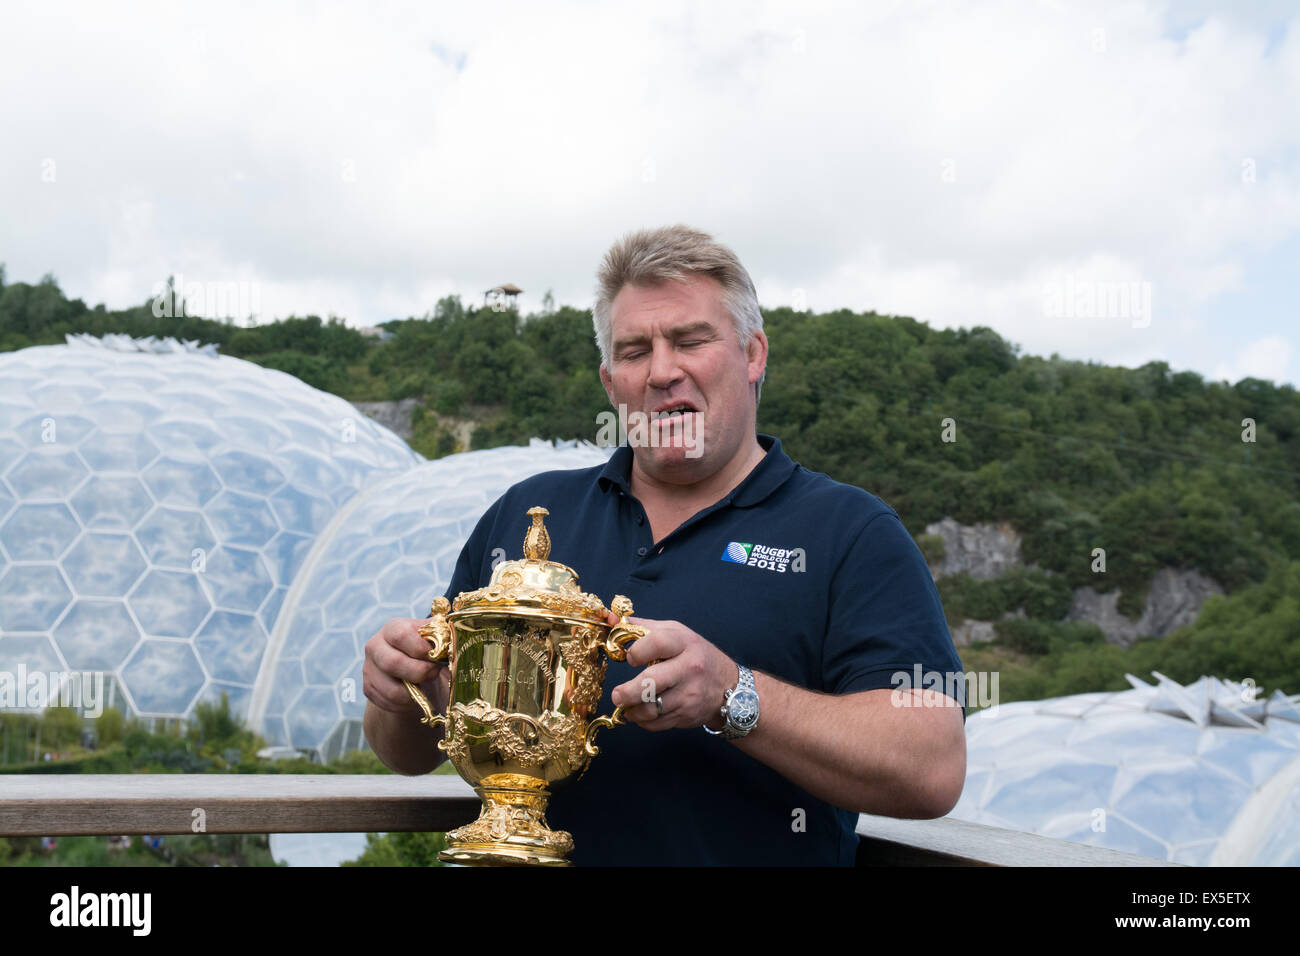 Picture of Jason Leonard , at the eden project with the Web Ellis trophy to launch the Rugby World Cup 2015 in england. - Stock Image